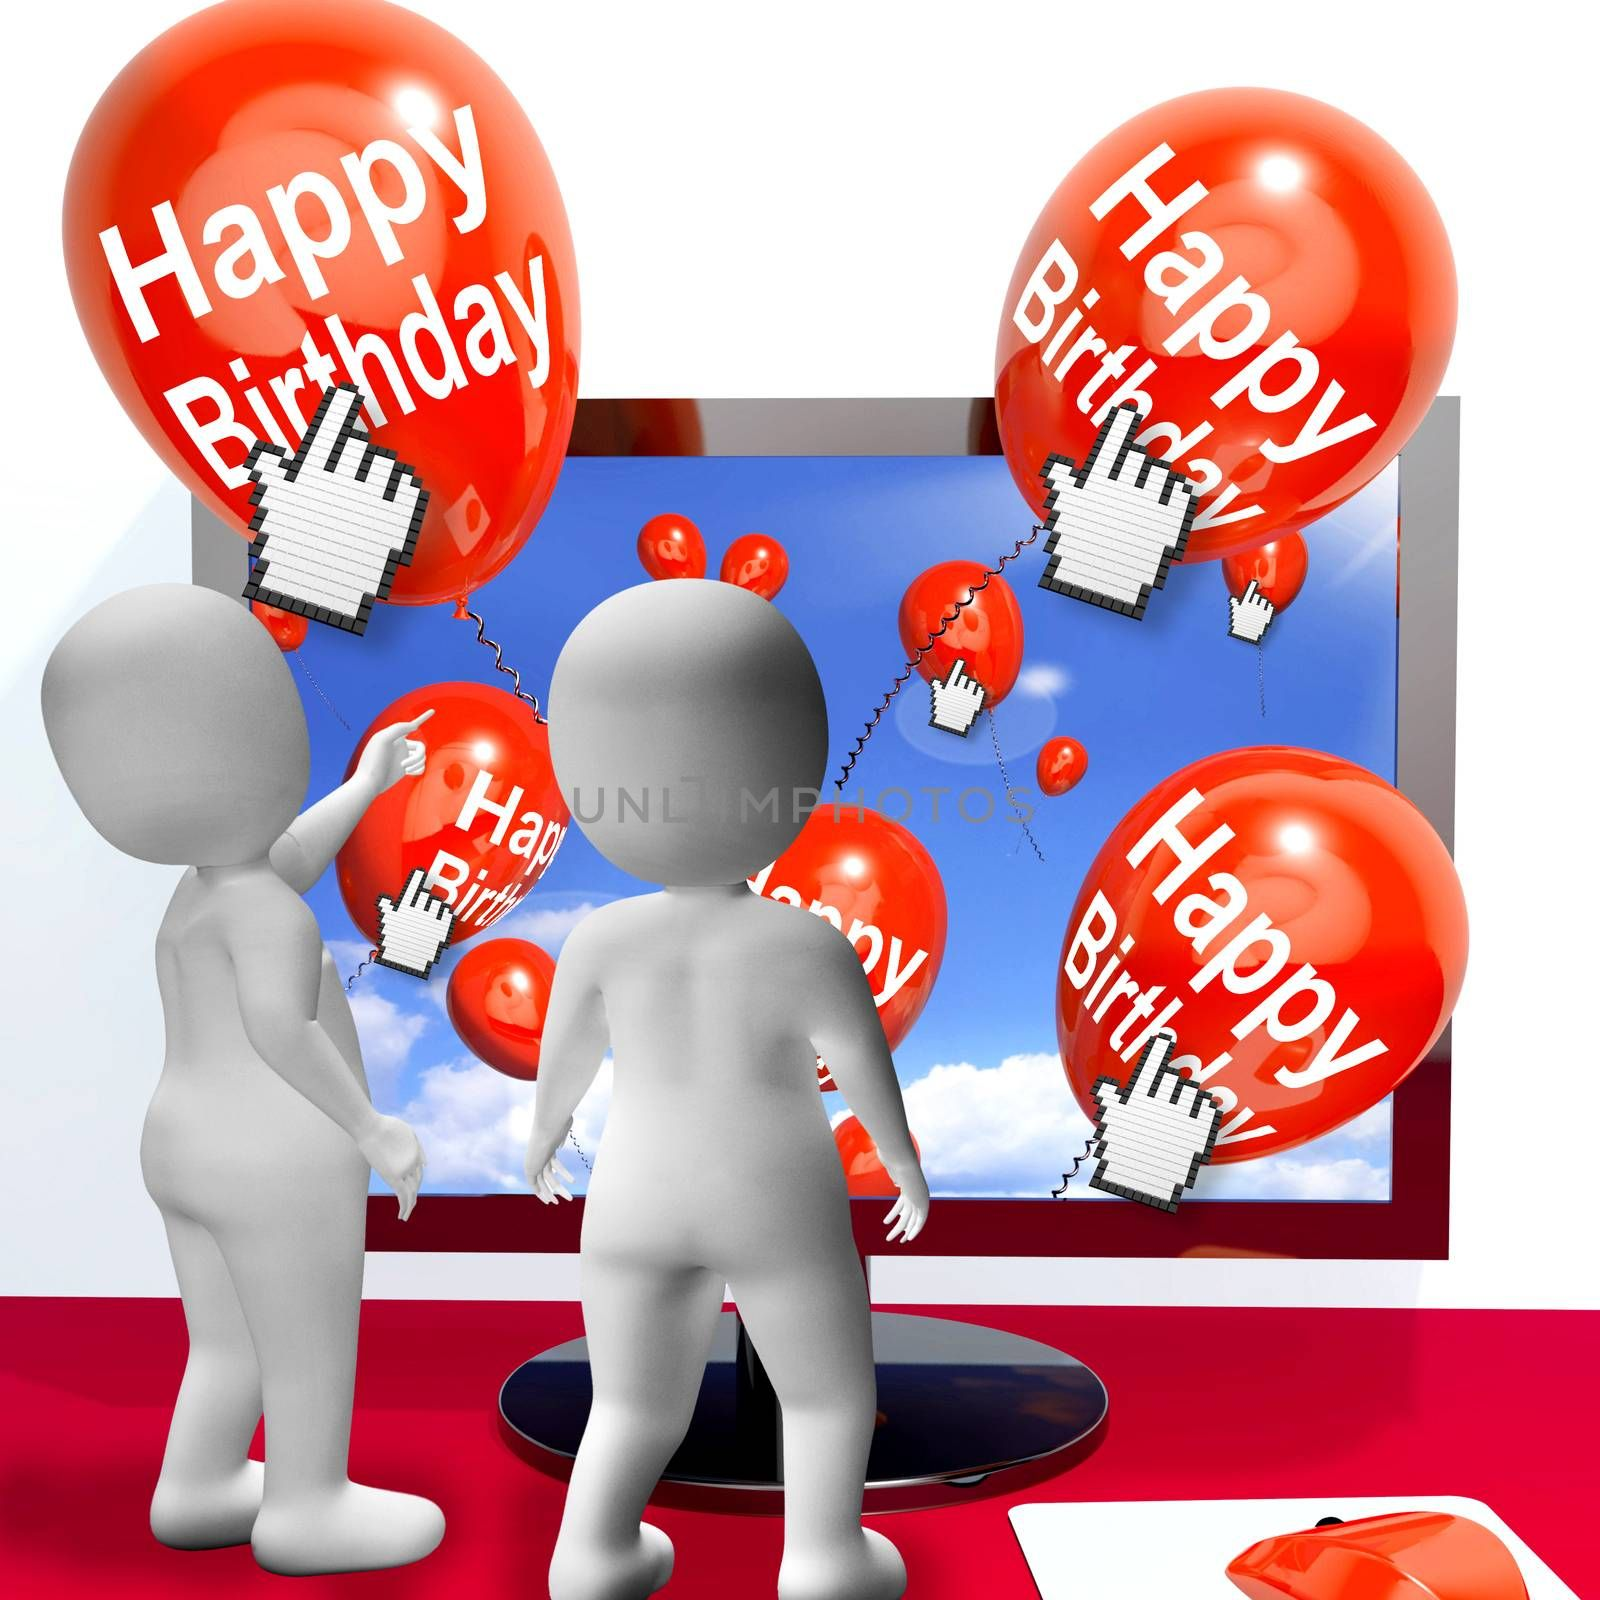 Happy Birthday Balloons Showing Festivities and Invitations Internet